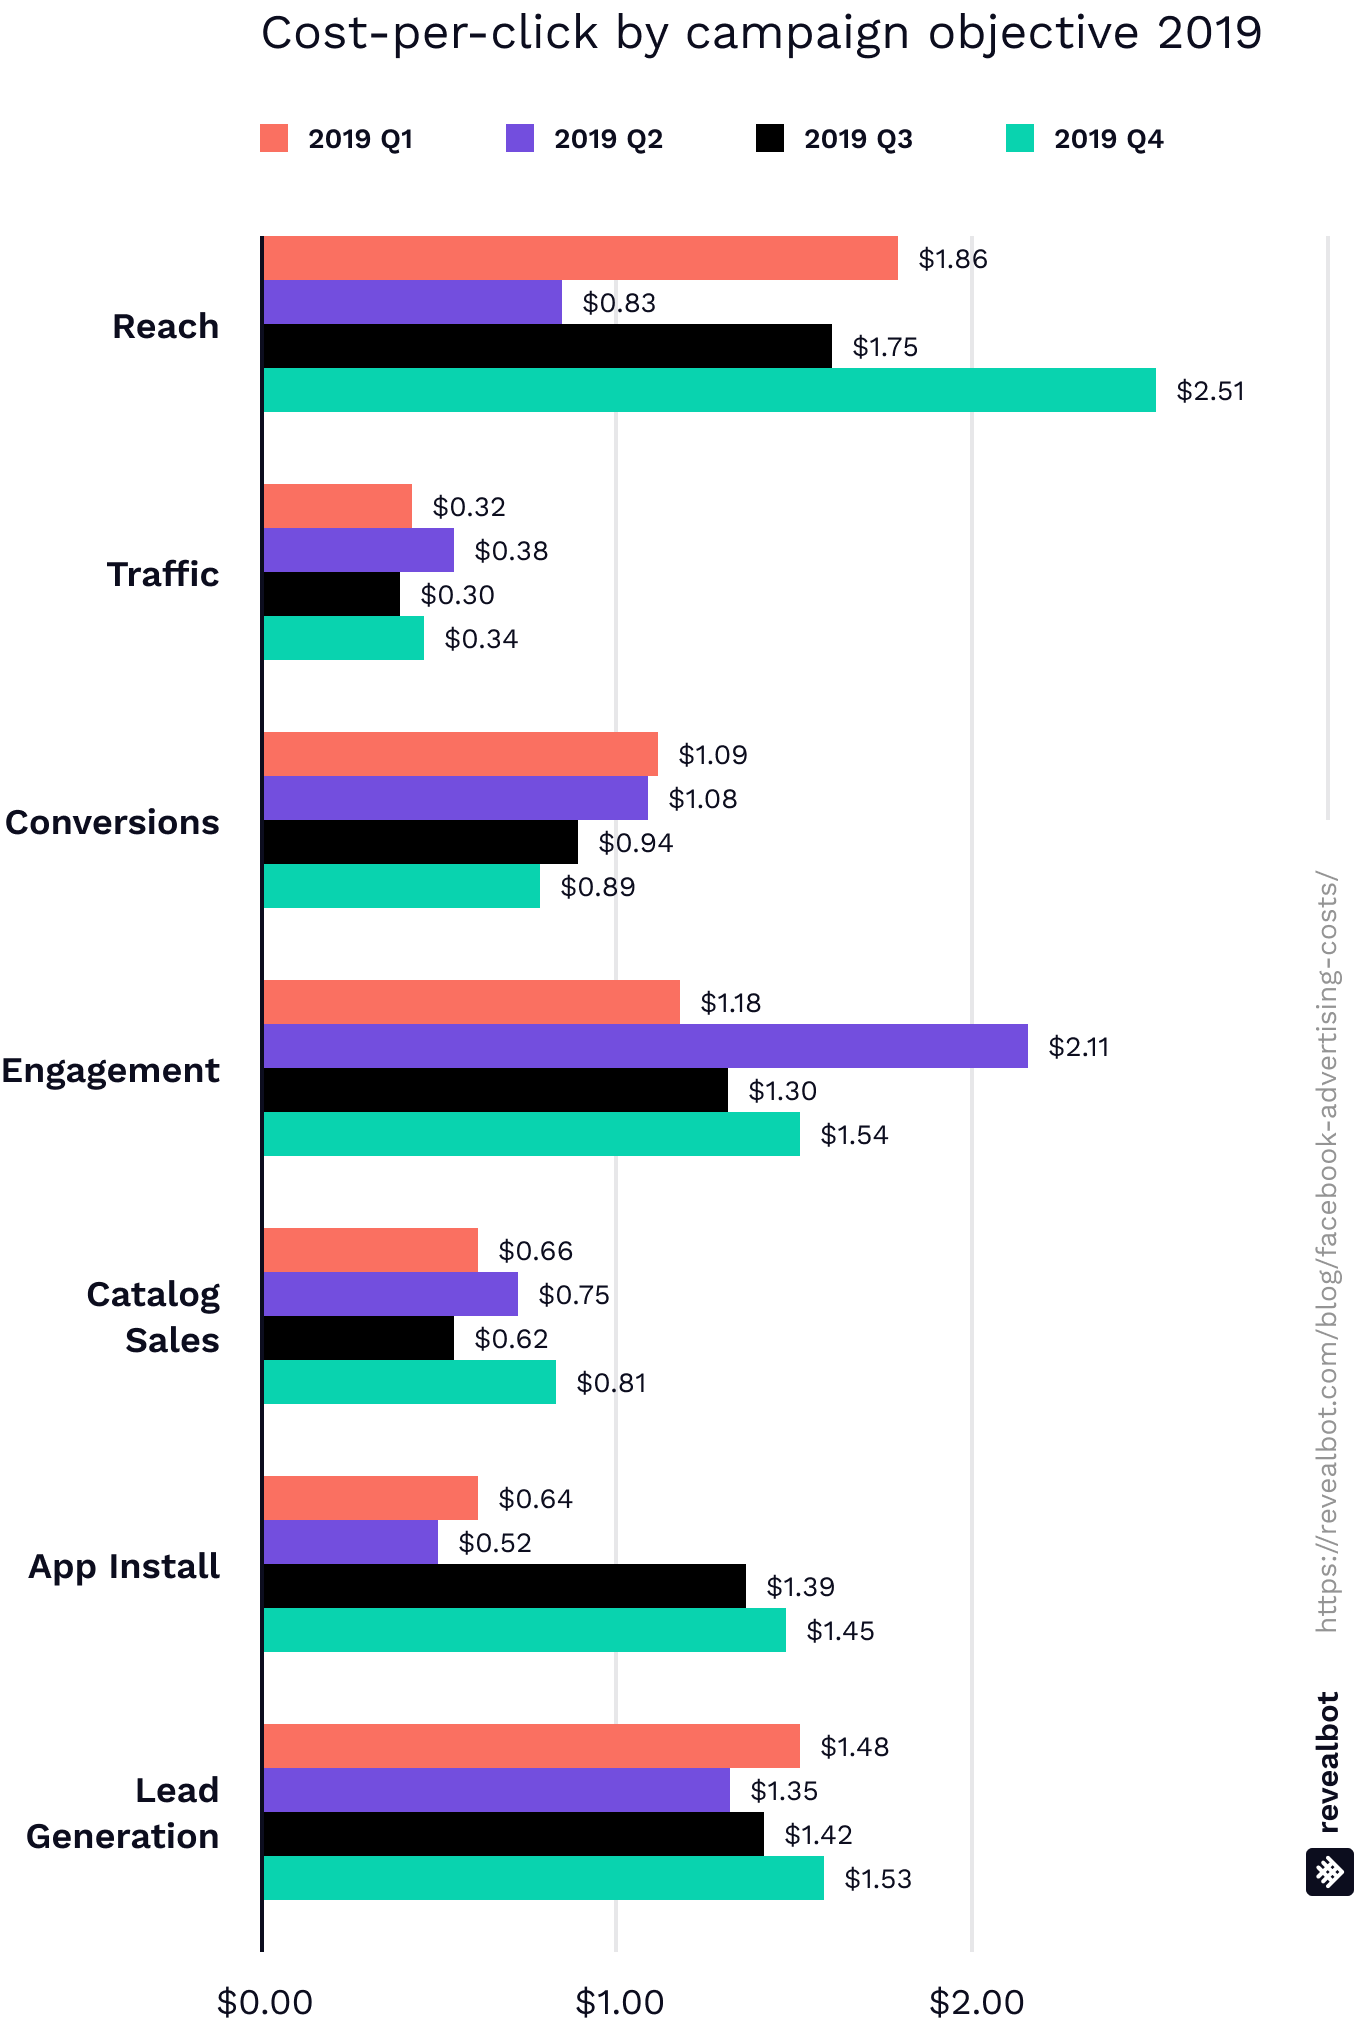 Average cost per click (CPC) for Facebook ads by campaign objective 2019